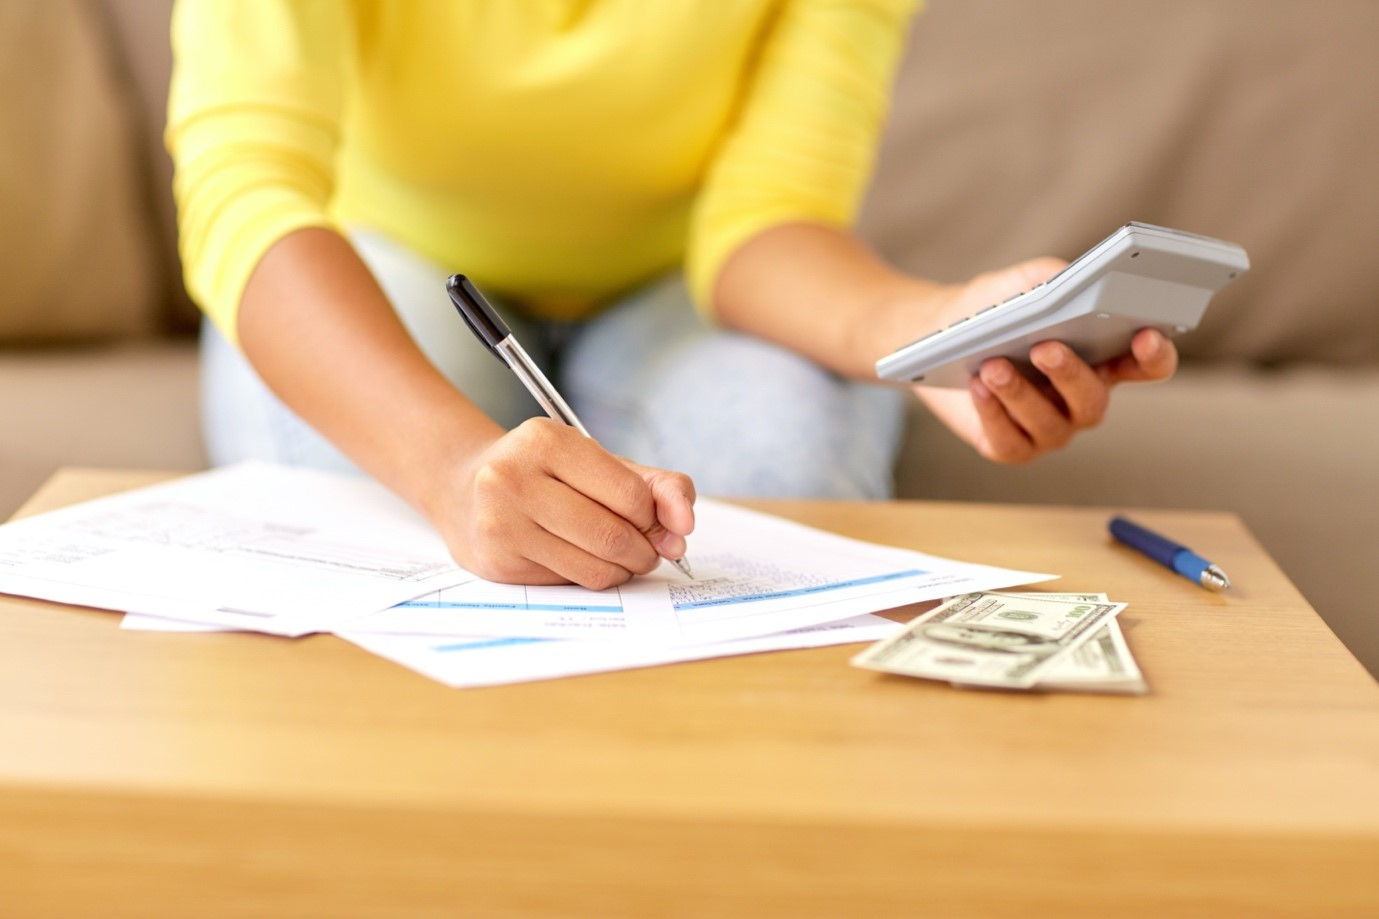 Woman holding calculator and planning a budget